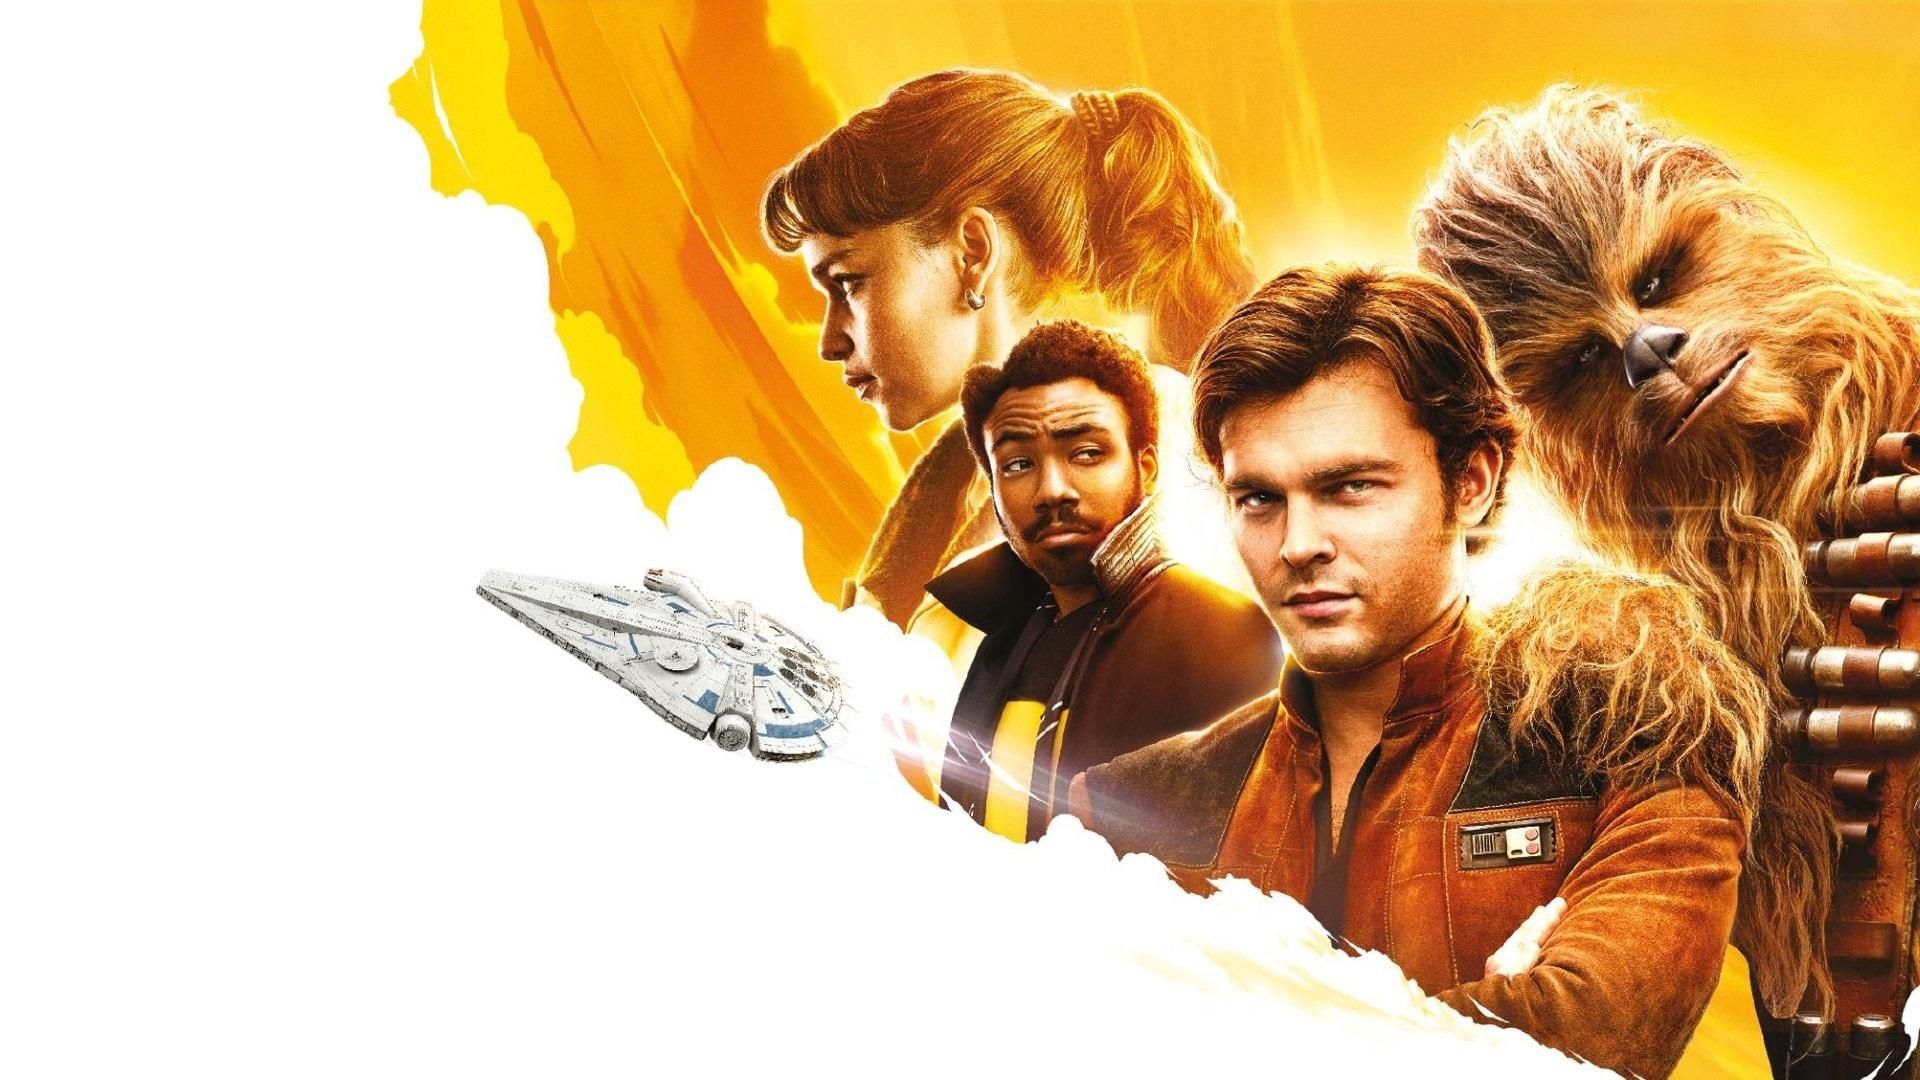 Solo A Star Wars Story 2018 Poster Wallpaper